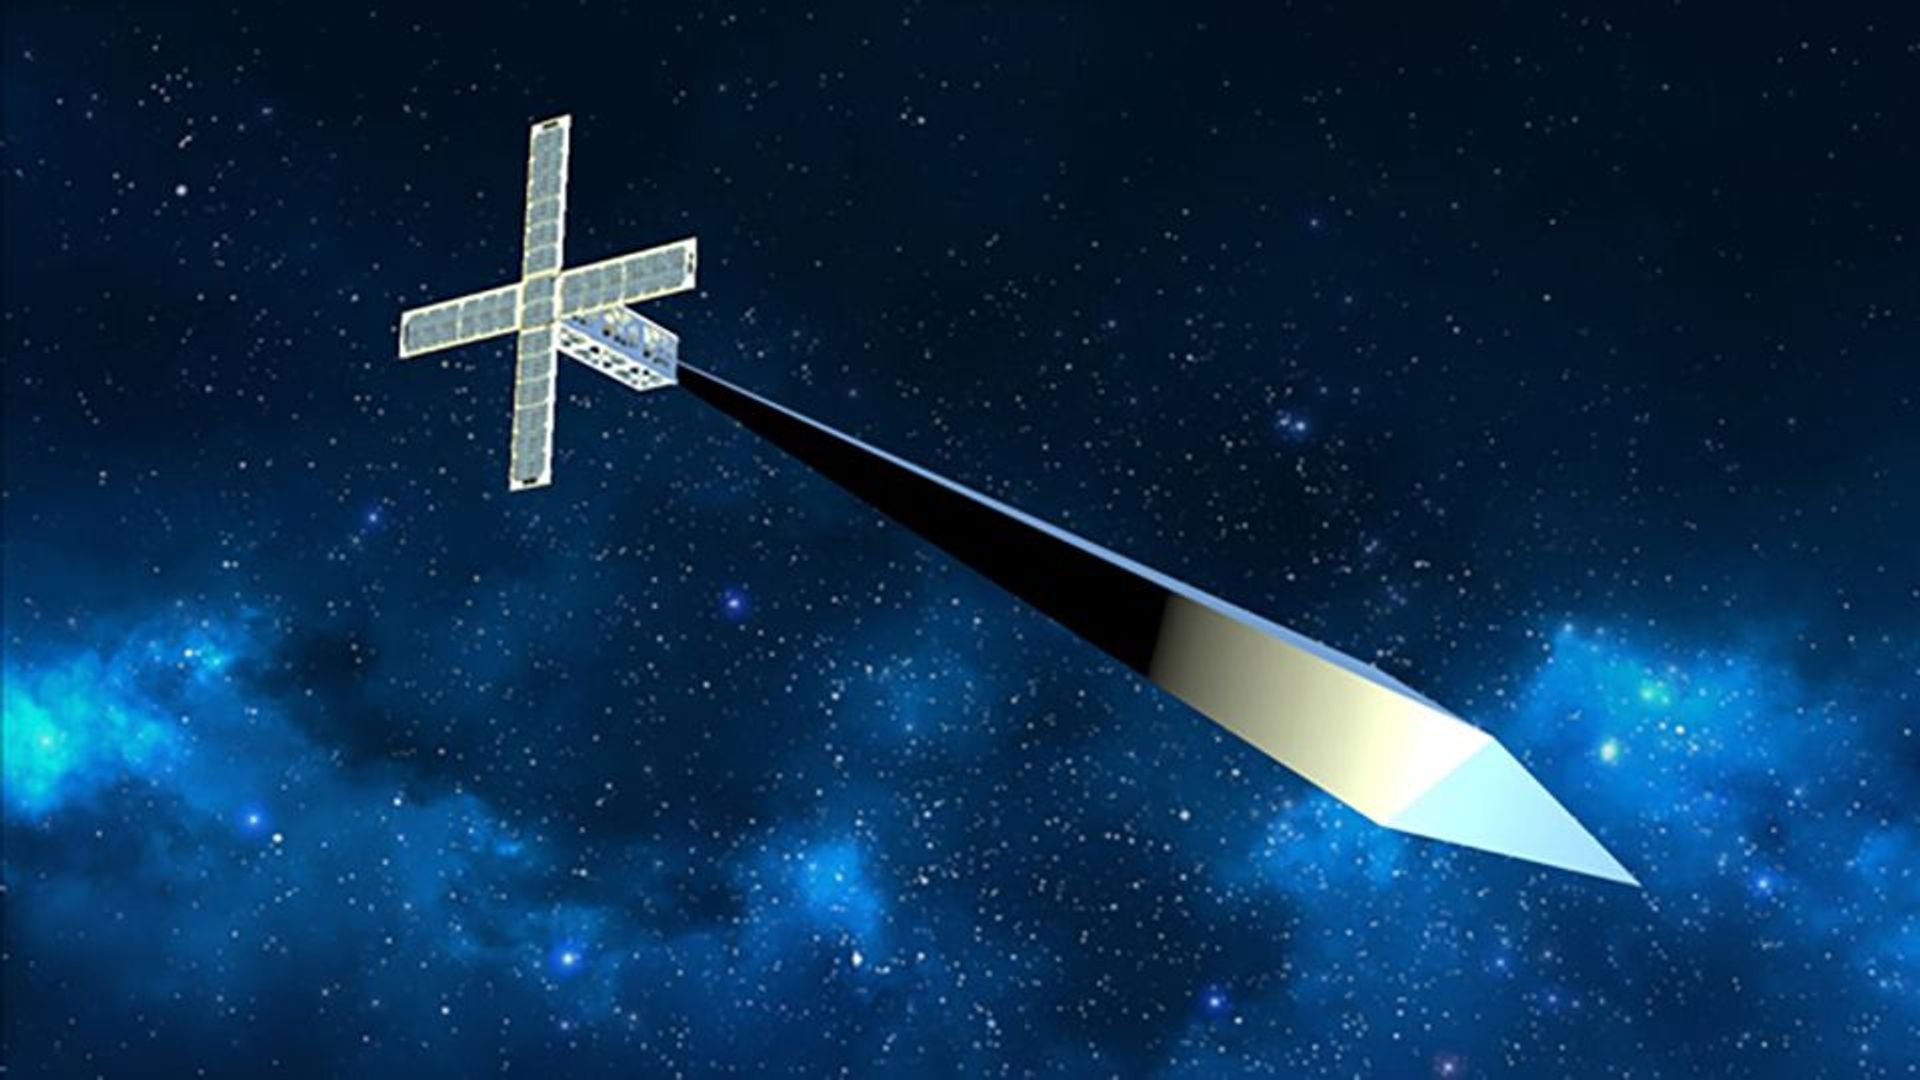 A rendering of Trevor Paglen's now unrealised Orbital Reflector project Photo courtesy of the Nevada Museum of Art